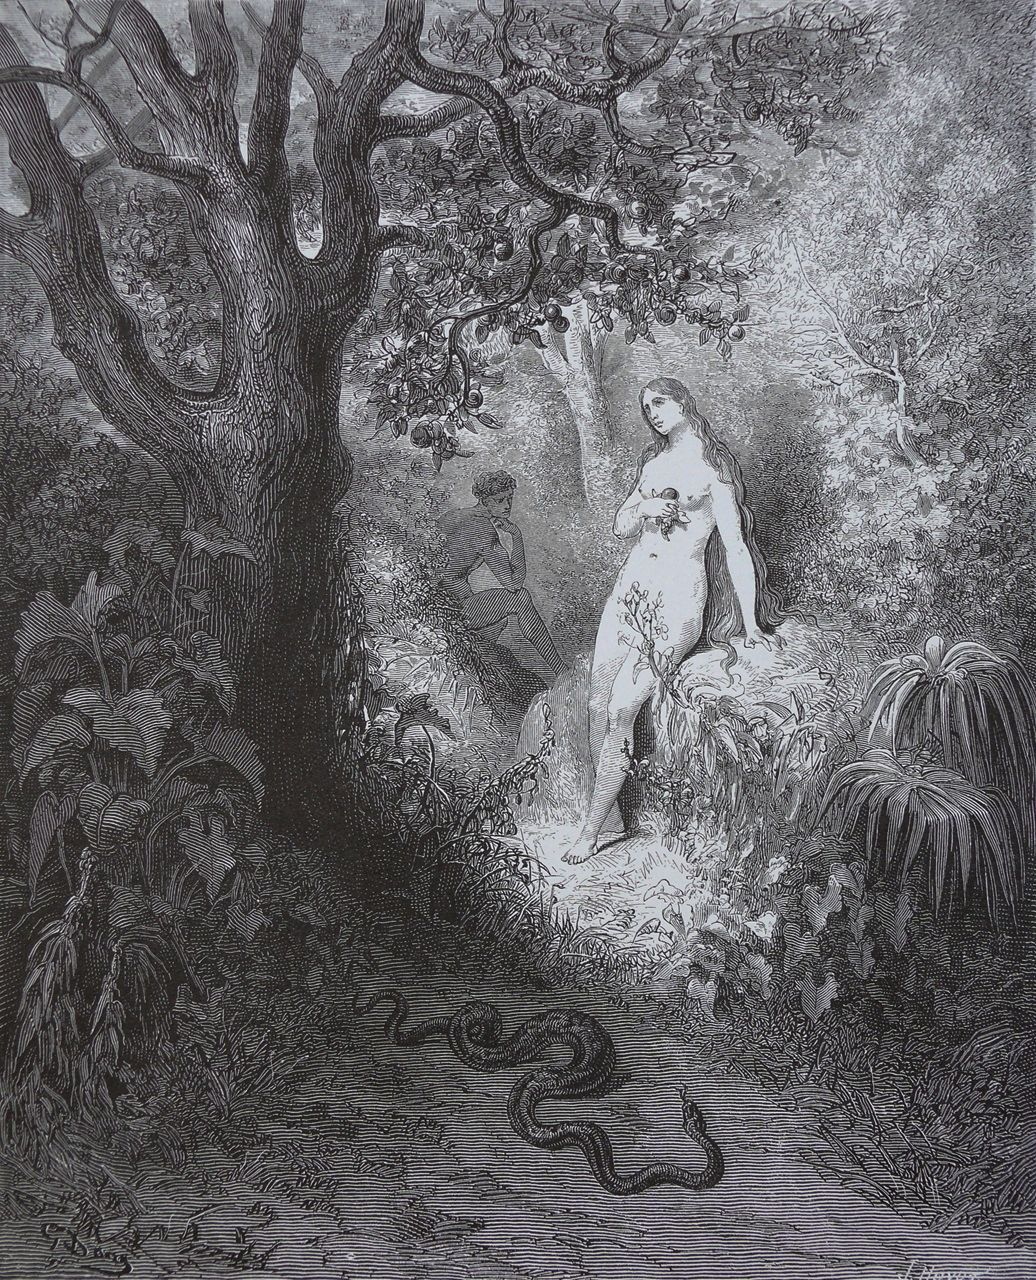 Illustration for Paradise Lost by Gustave Doré, depicting Adam, Eve, and the Serpent